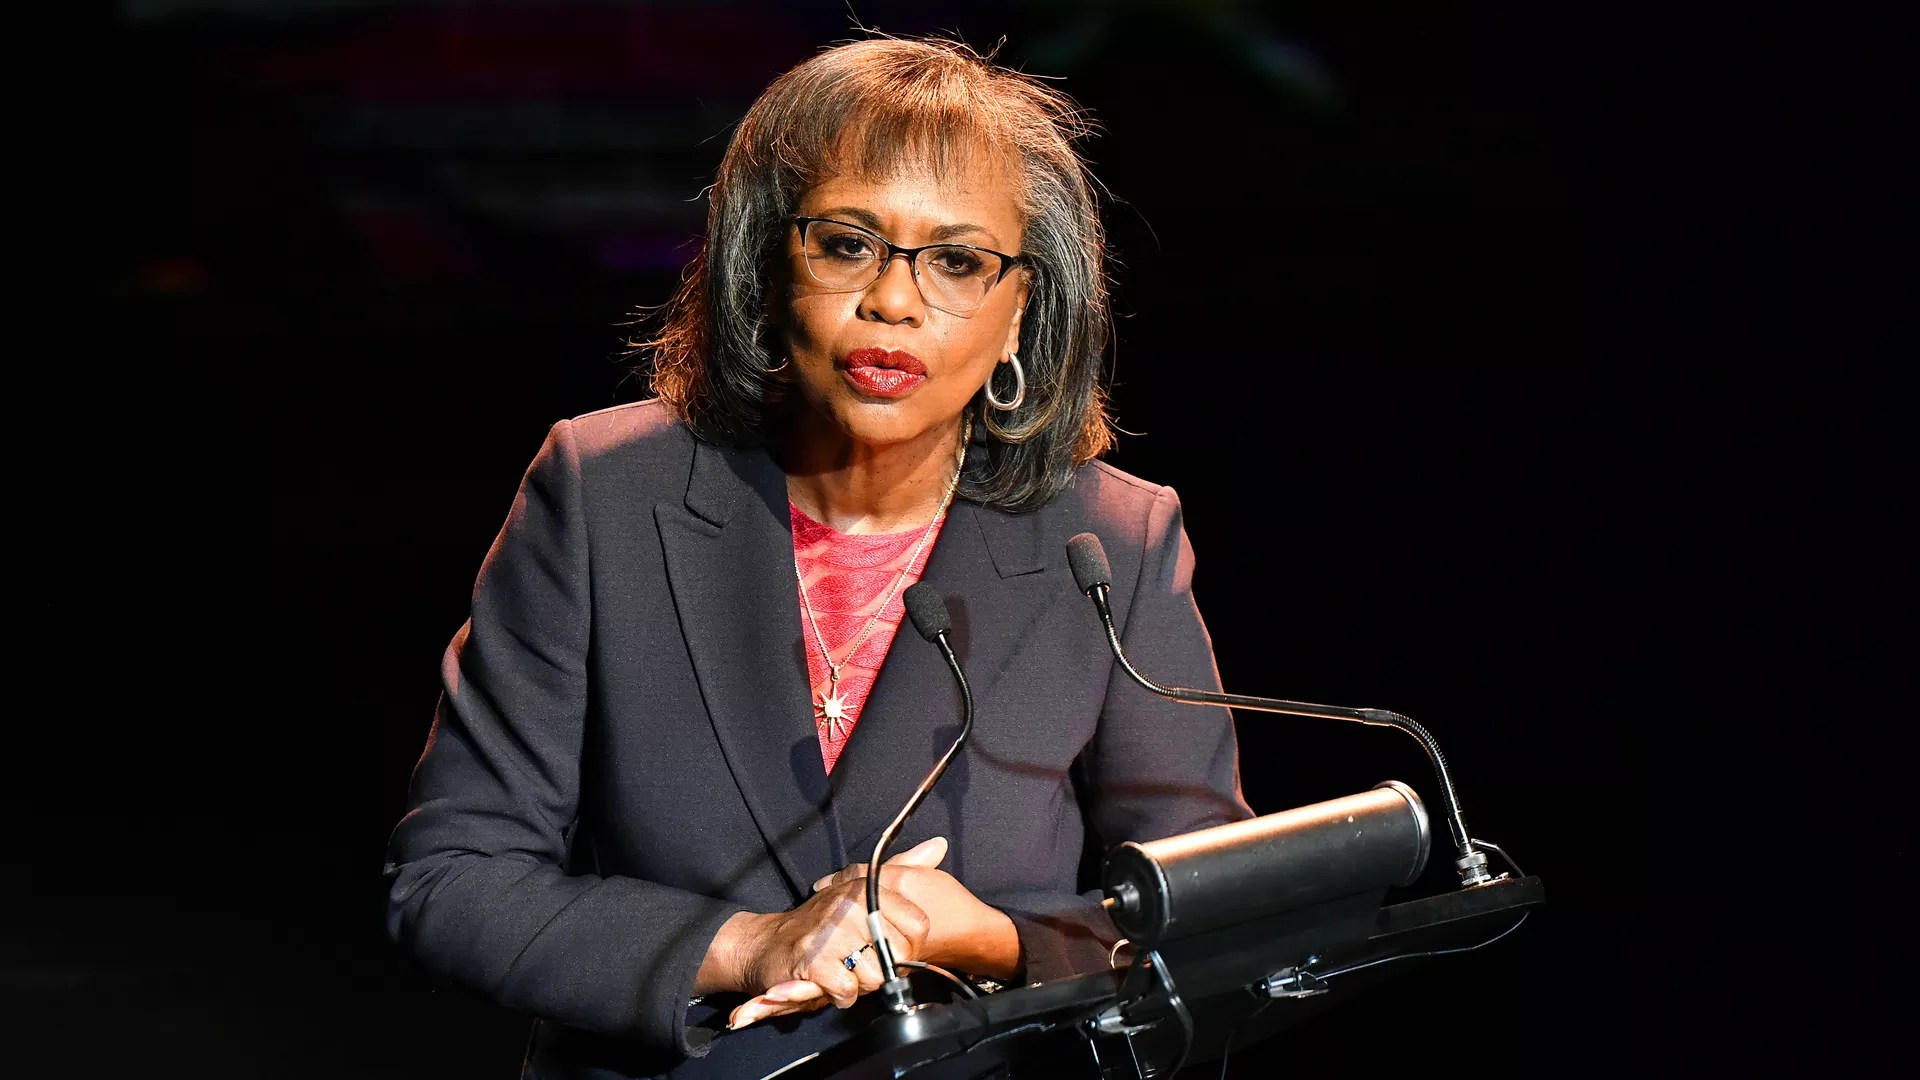 Anita Hill Is Creating an App to Hold Serial Abusers Accountable